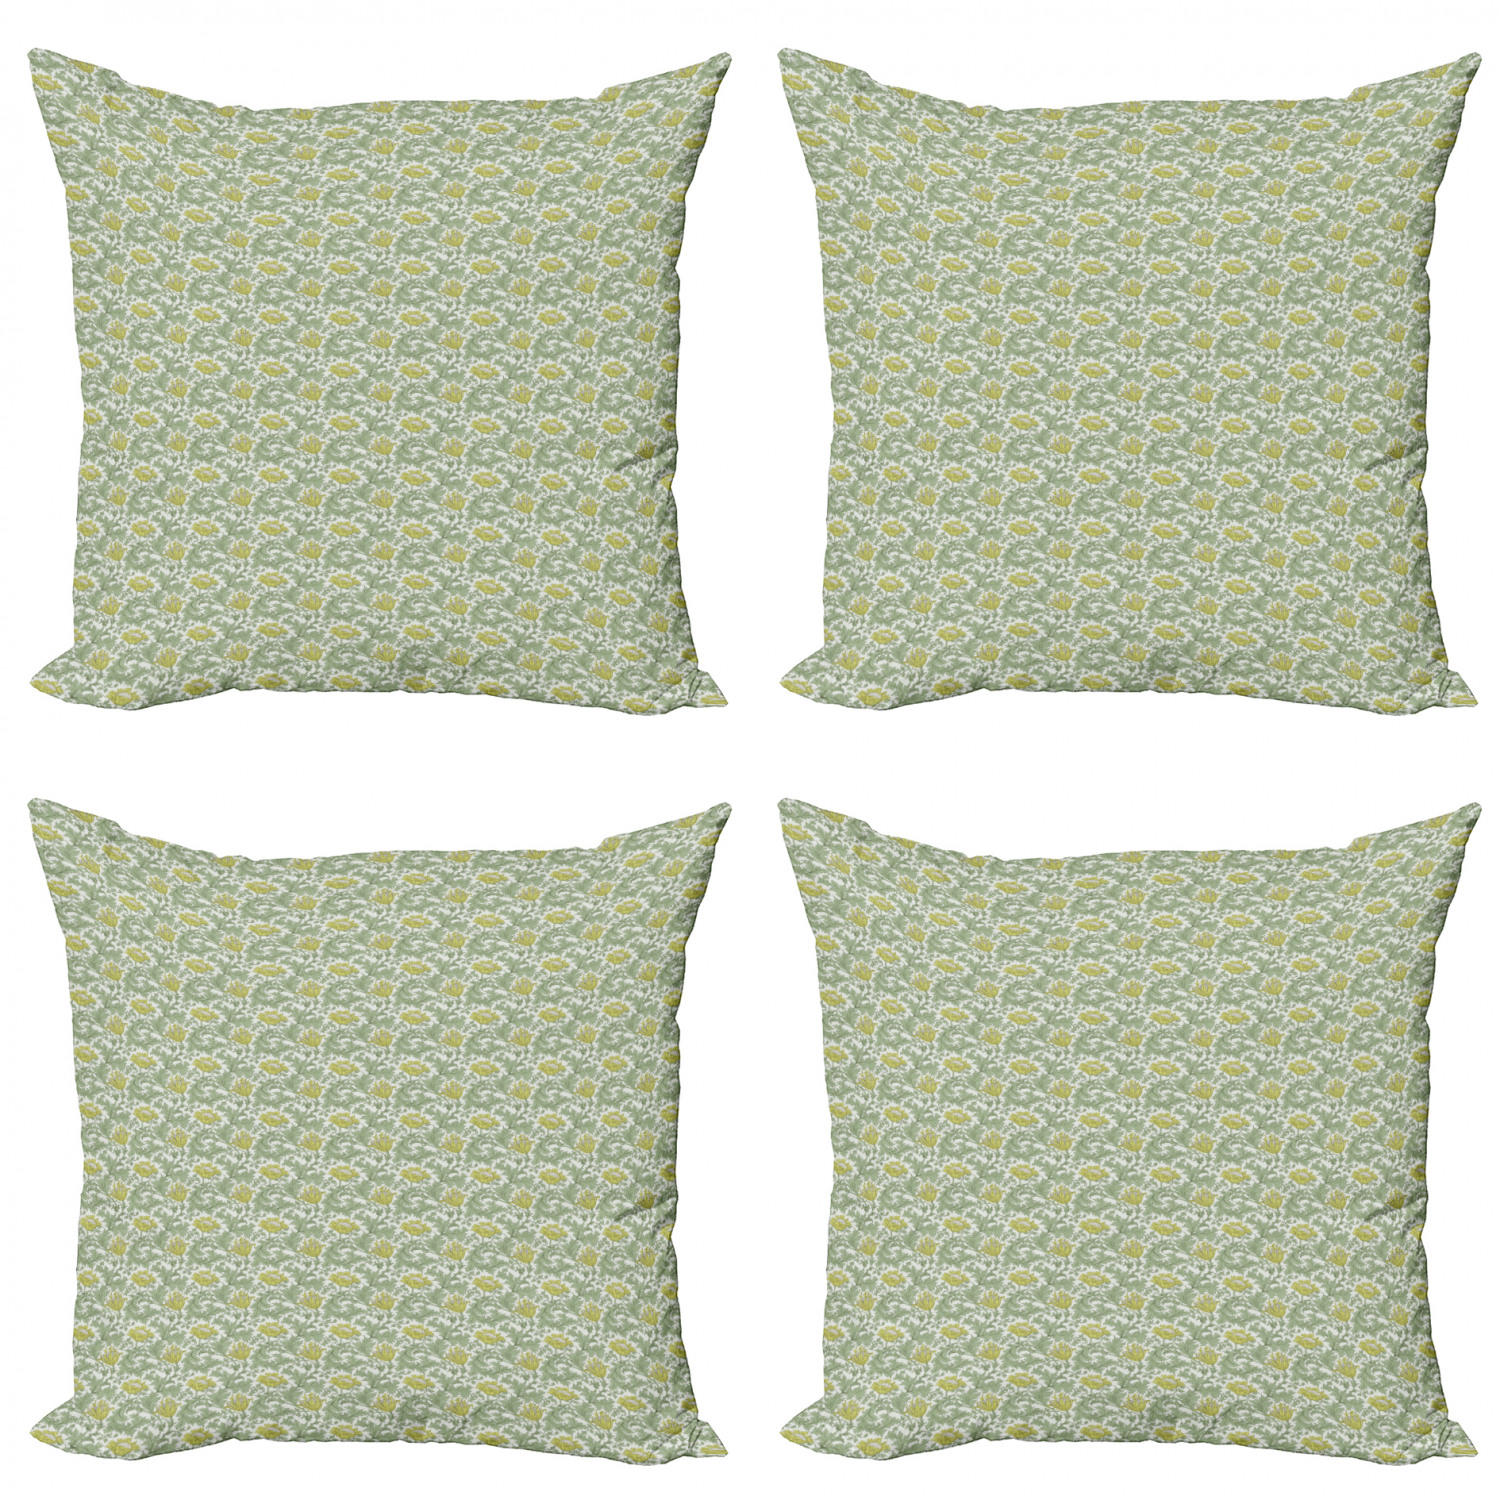 Ambesonne-Floral-Drawings-Cushion-Cover-Set-of-4-for-Couch-and-Bed-in-4-Sizes thumbnail 38